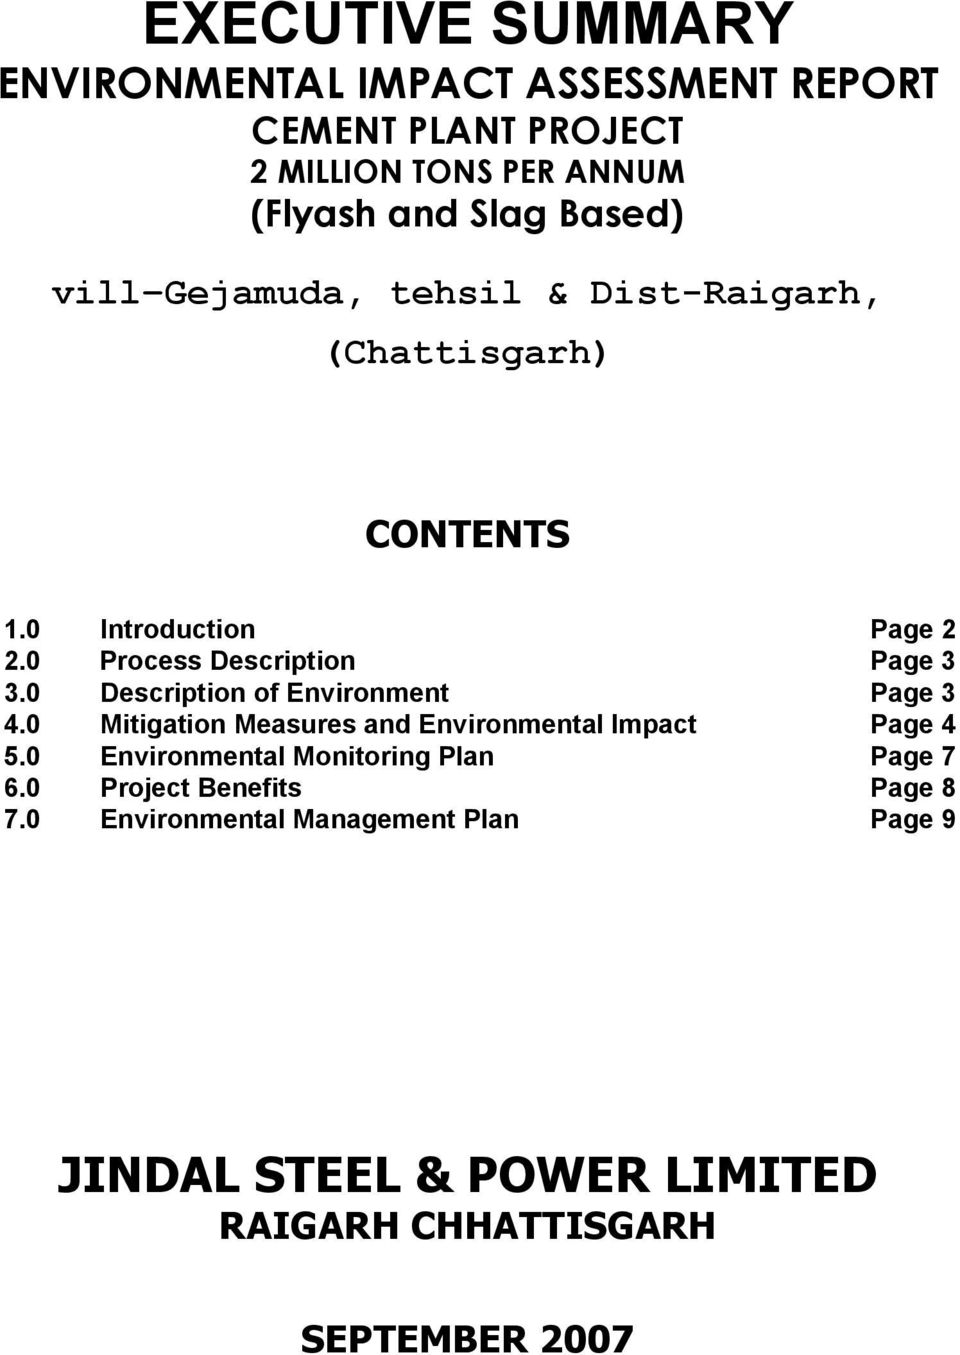 0 Description of Environment Page 3 4.0 Mitigation Measures and Environmental Impact Page 4 5.